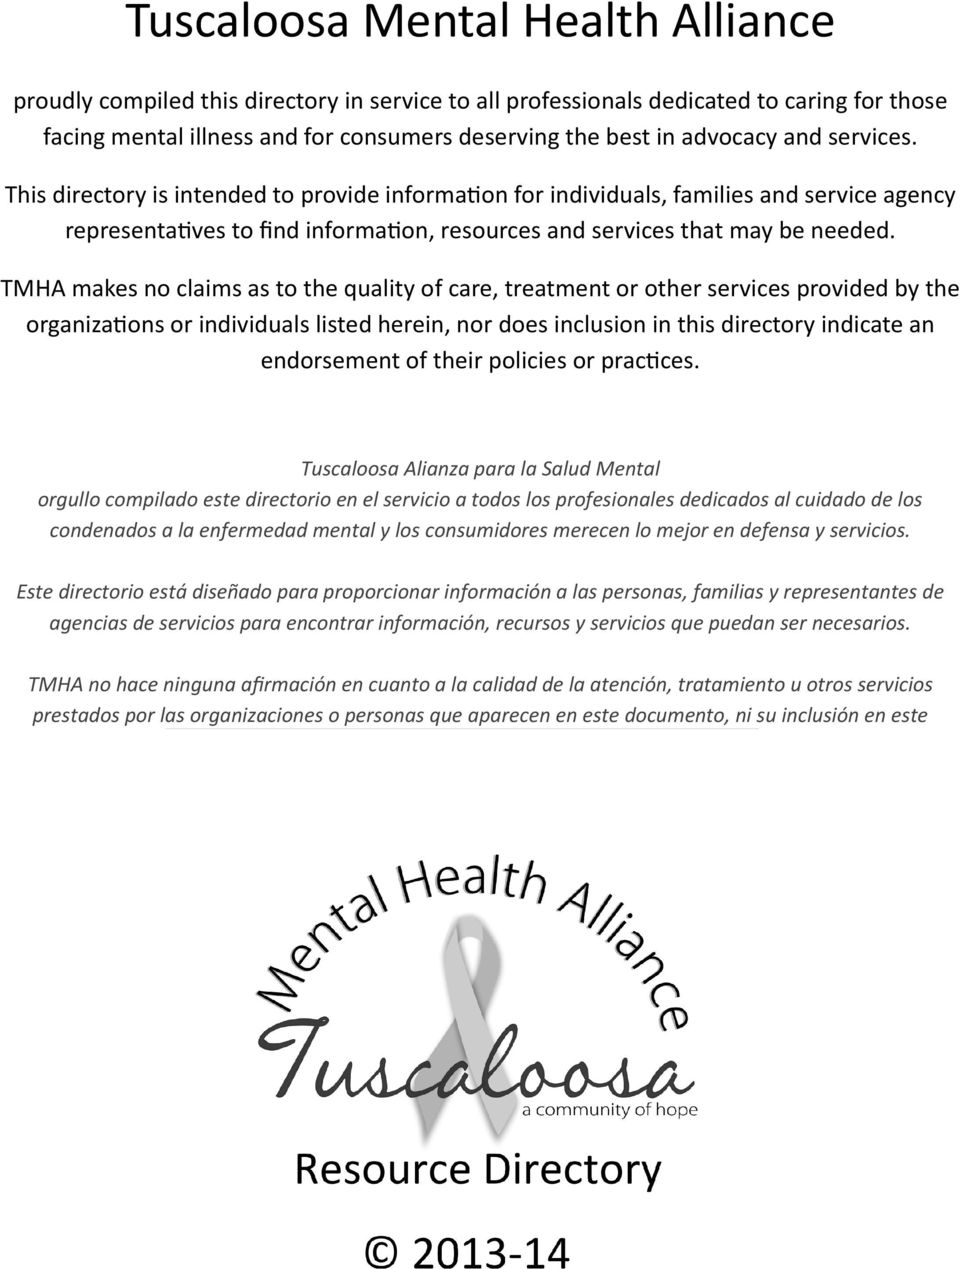 TMHA makes no claims as to the quality of care, treatment or other services provided by the organizations or individuals listed herein, nor does inclusion in this directory indicate an endorsement of